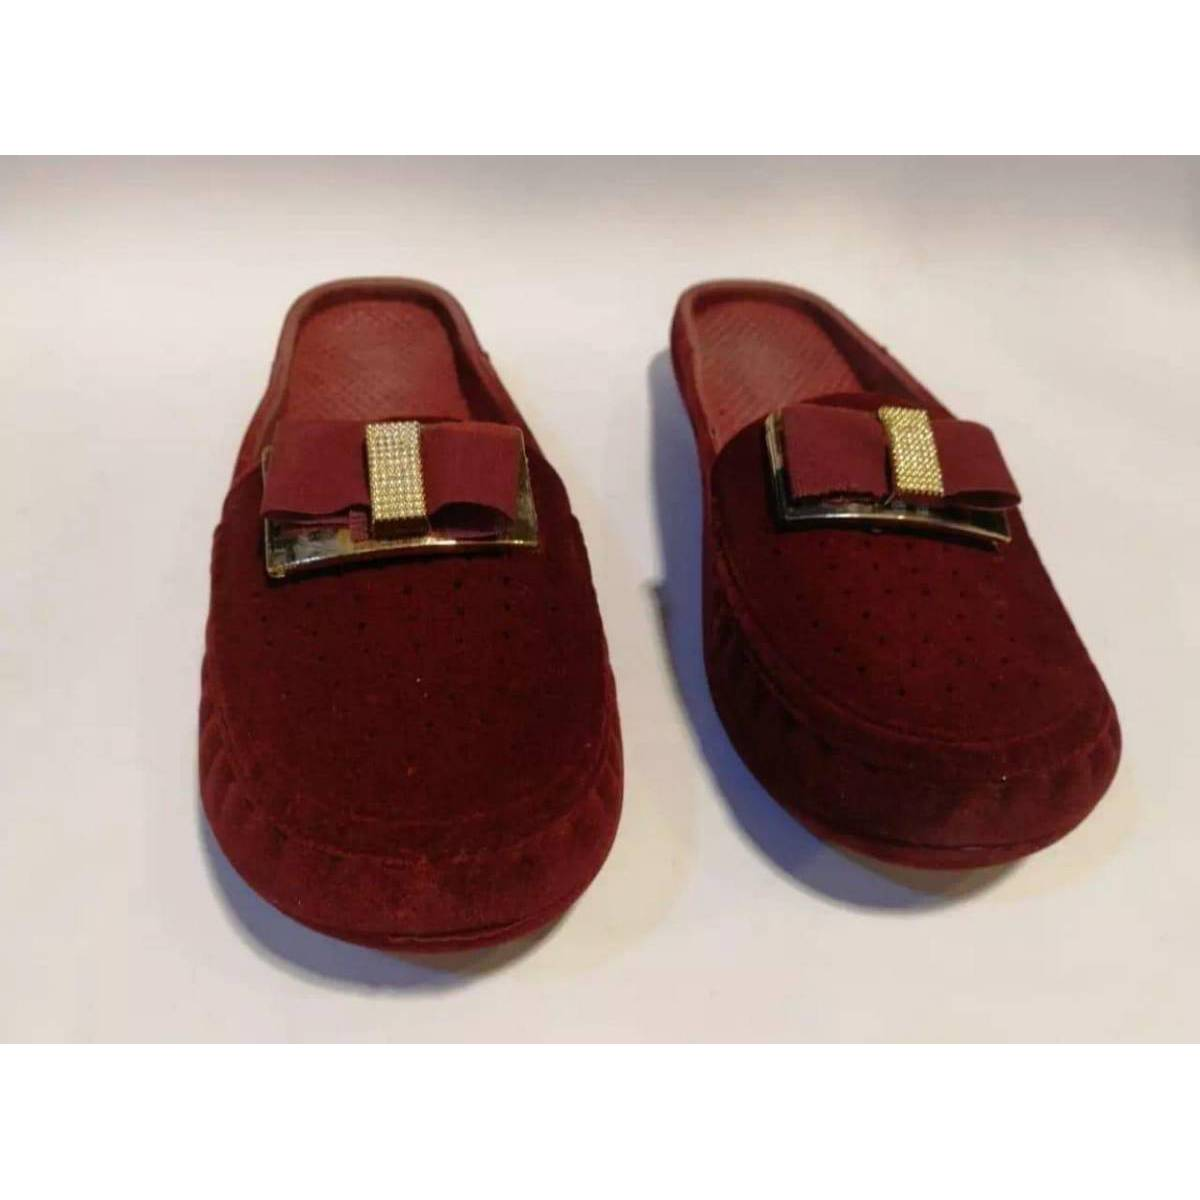 KFC Casual Mehroon Slipper For WoMen Latest Arrival With Fabolus Quality